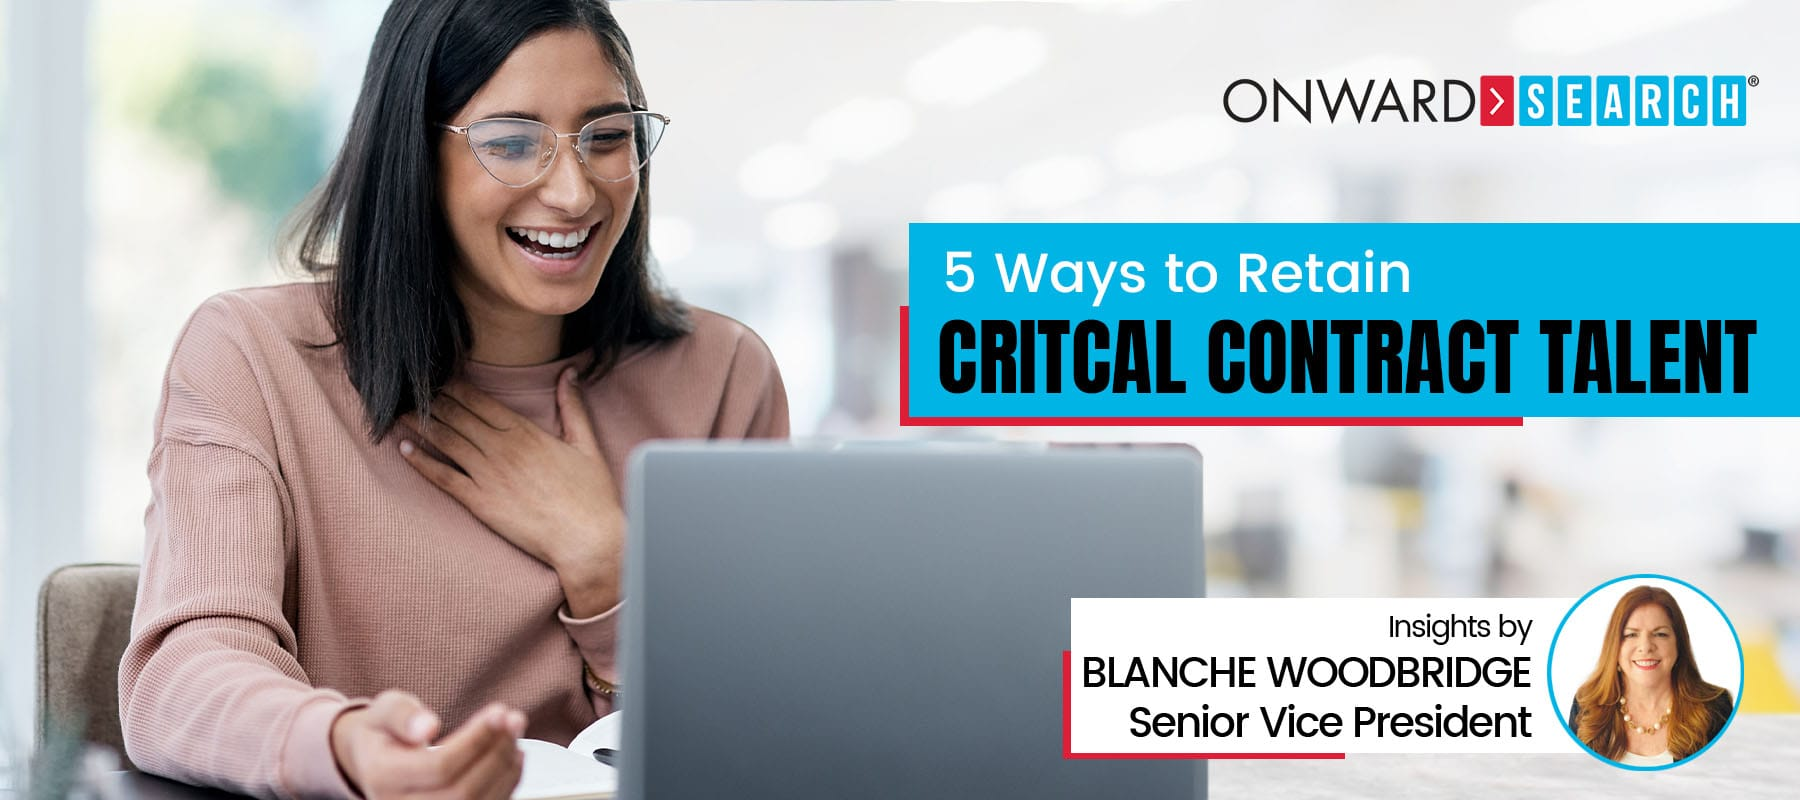 Retaining Critical Contract Talent